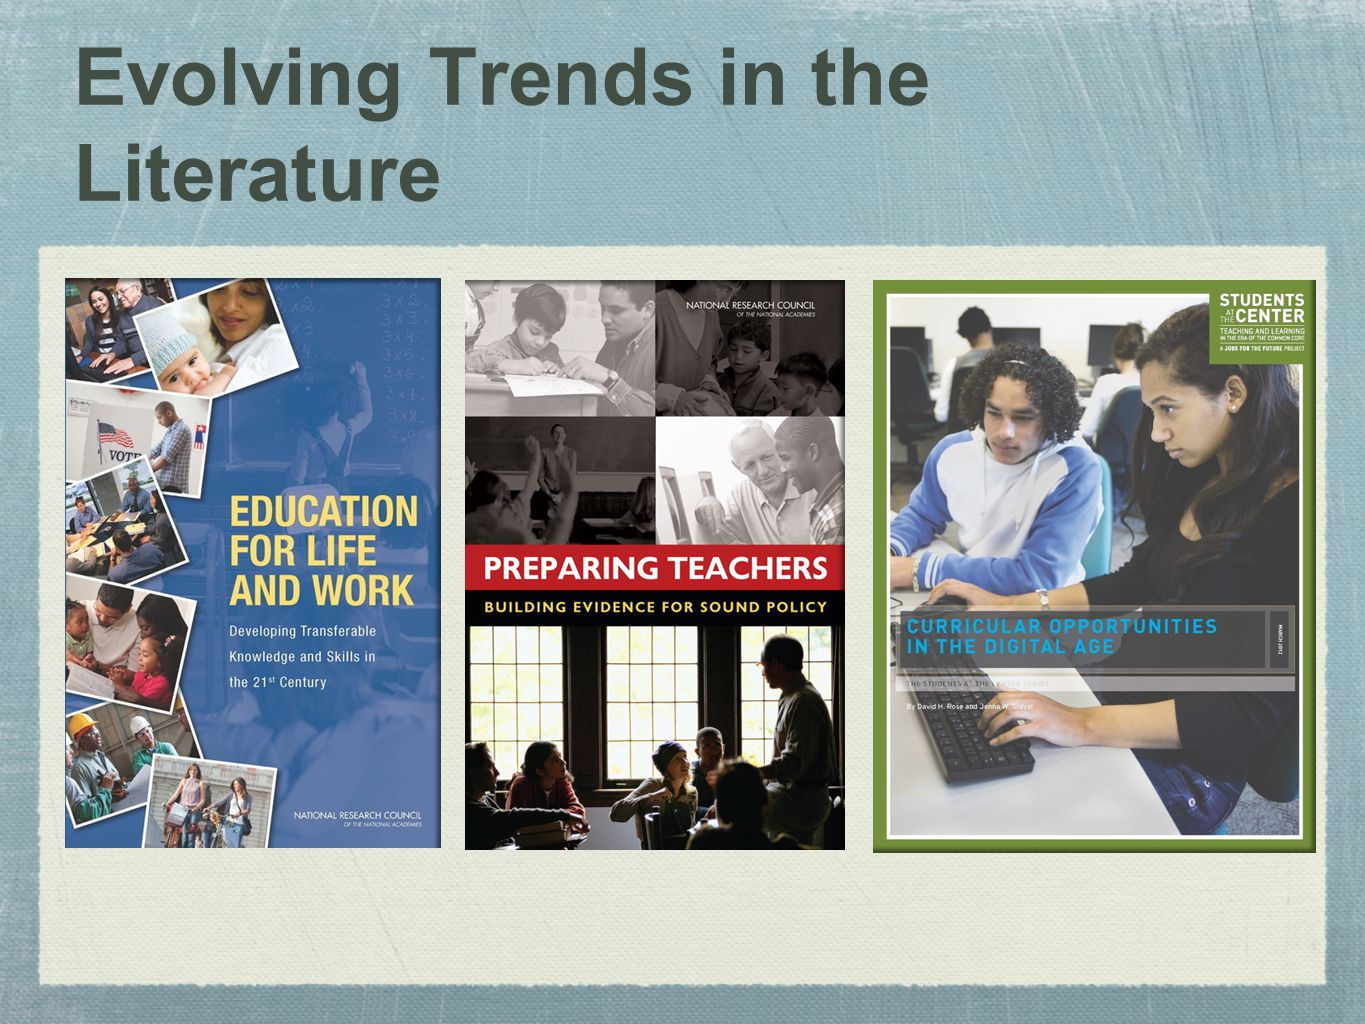 Evolving Trends in the Literature